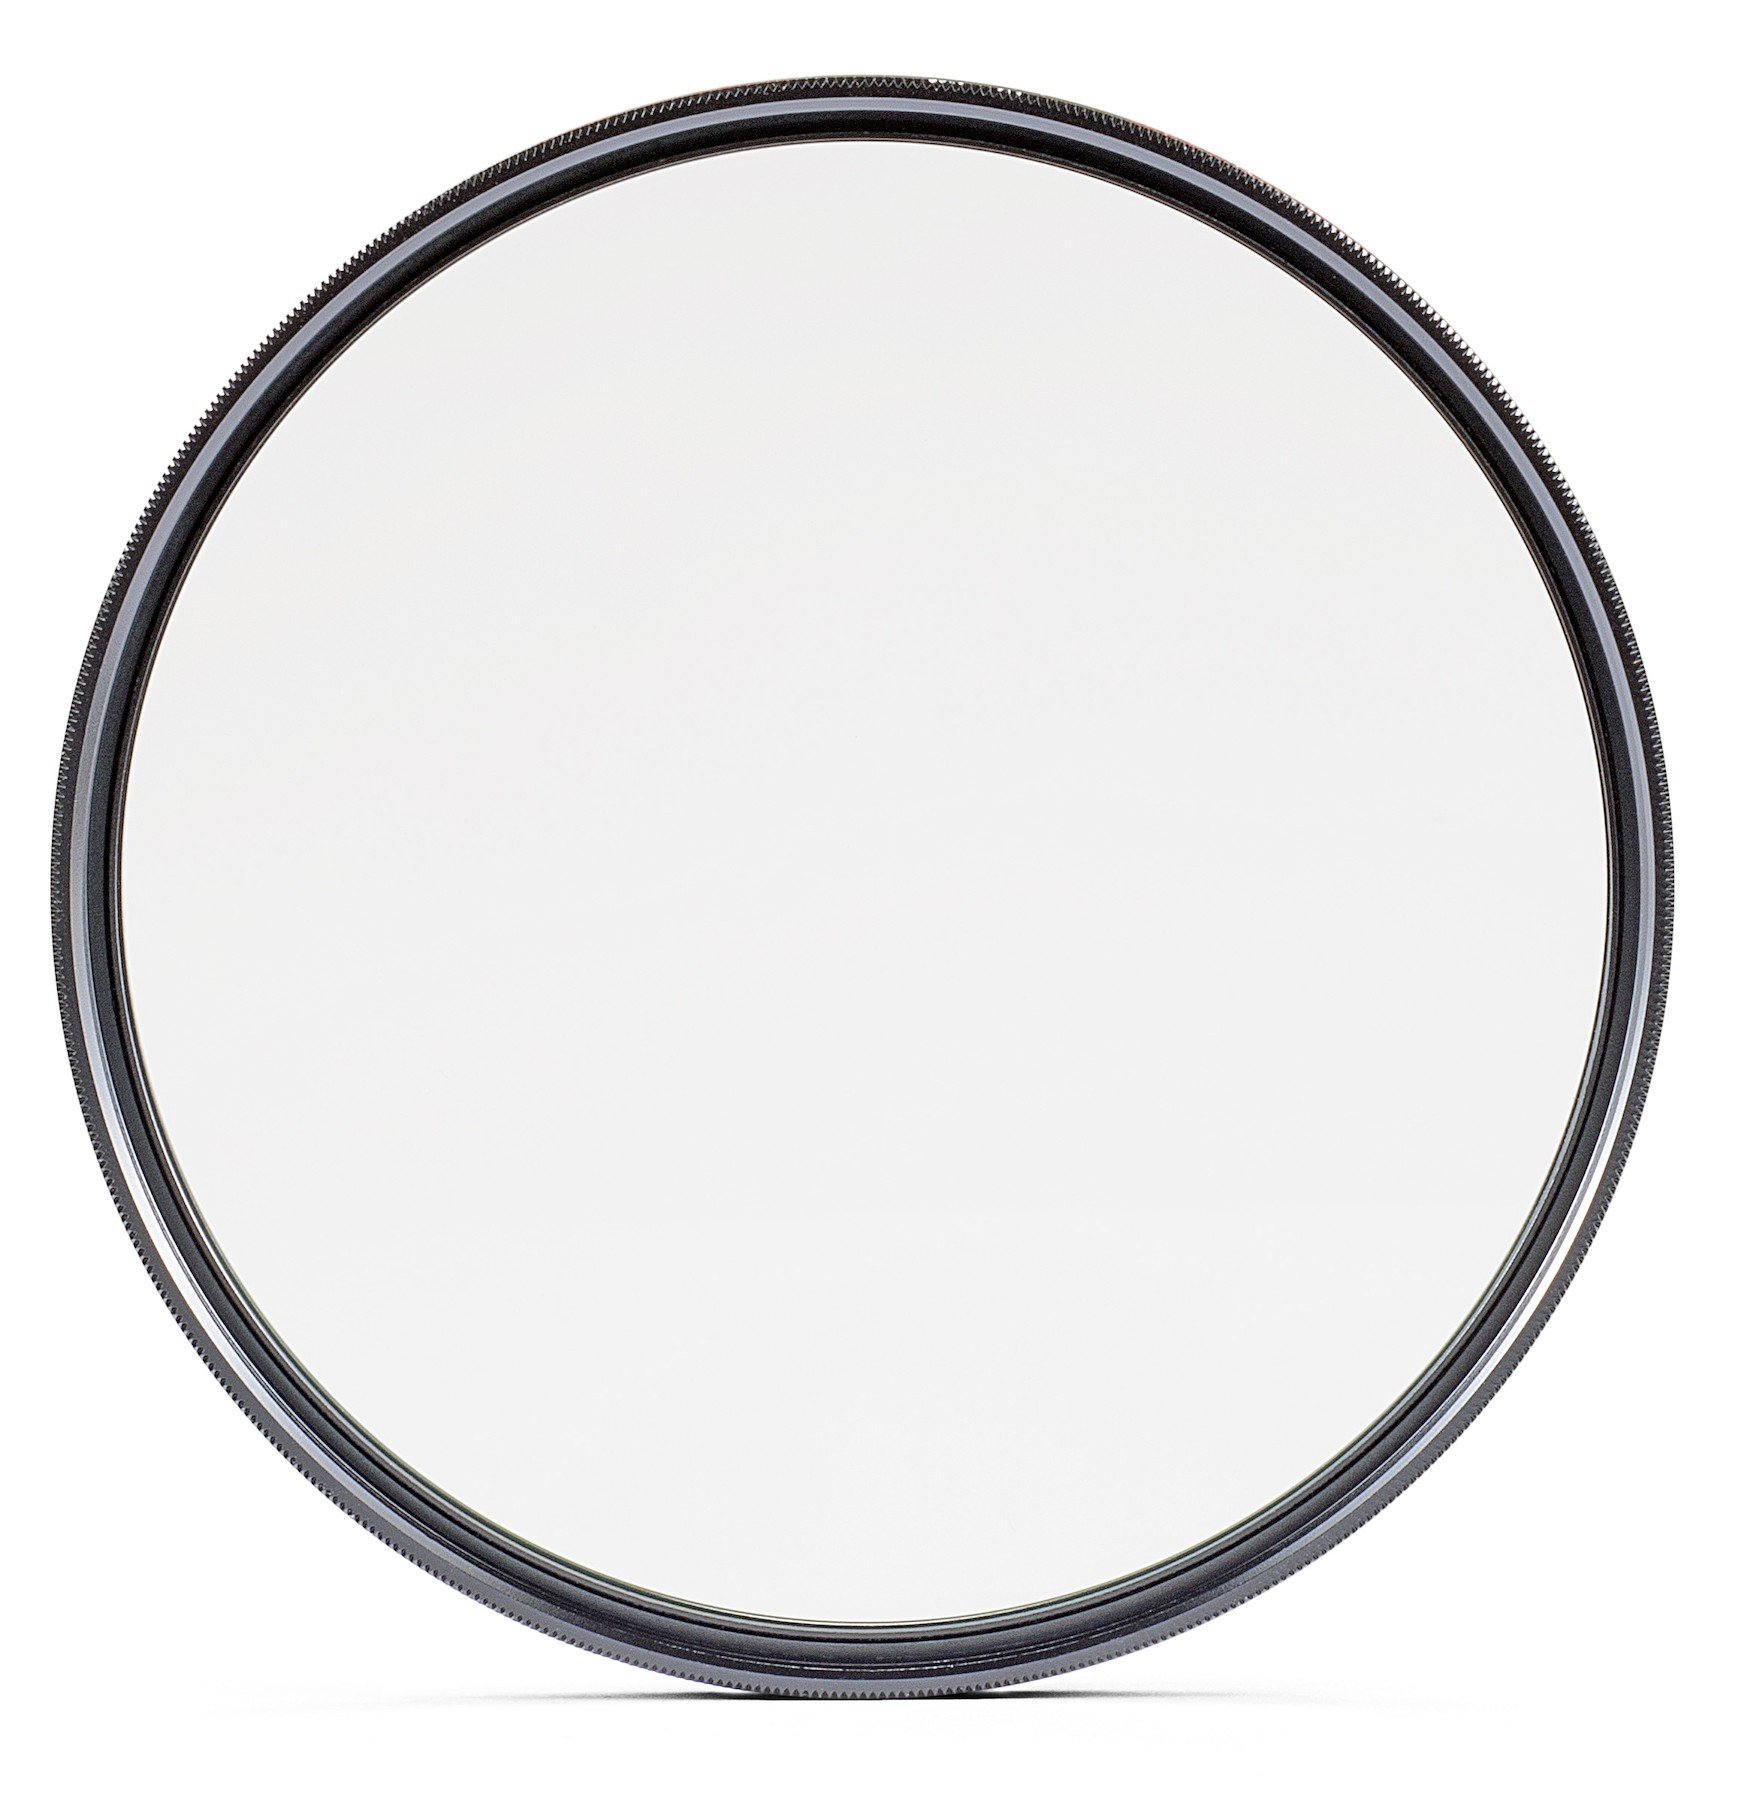 Manfrotto MFPROPTT-52  52mm Professional Protect Filter MFPROPTT-52